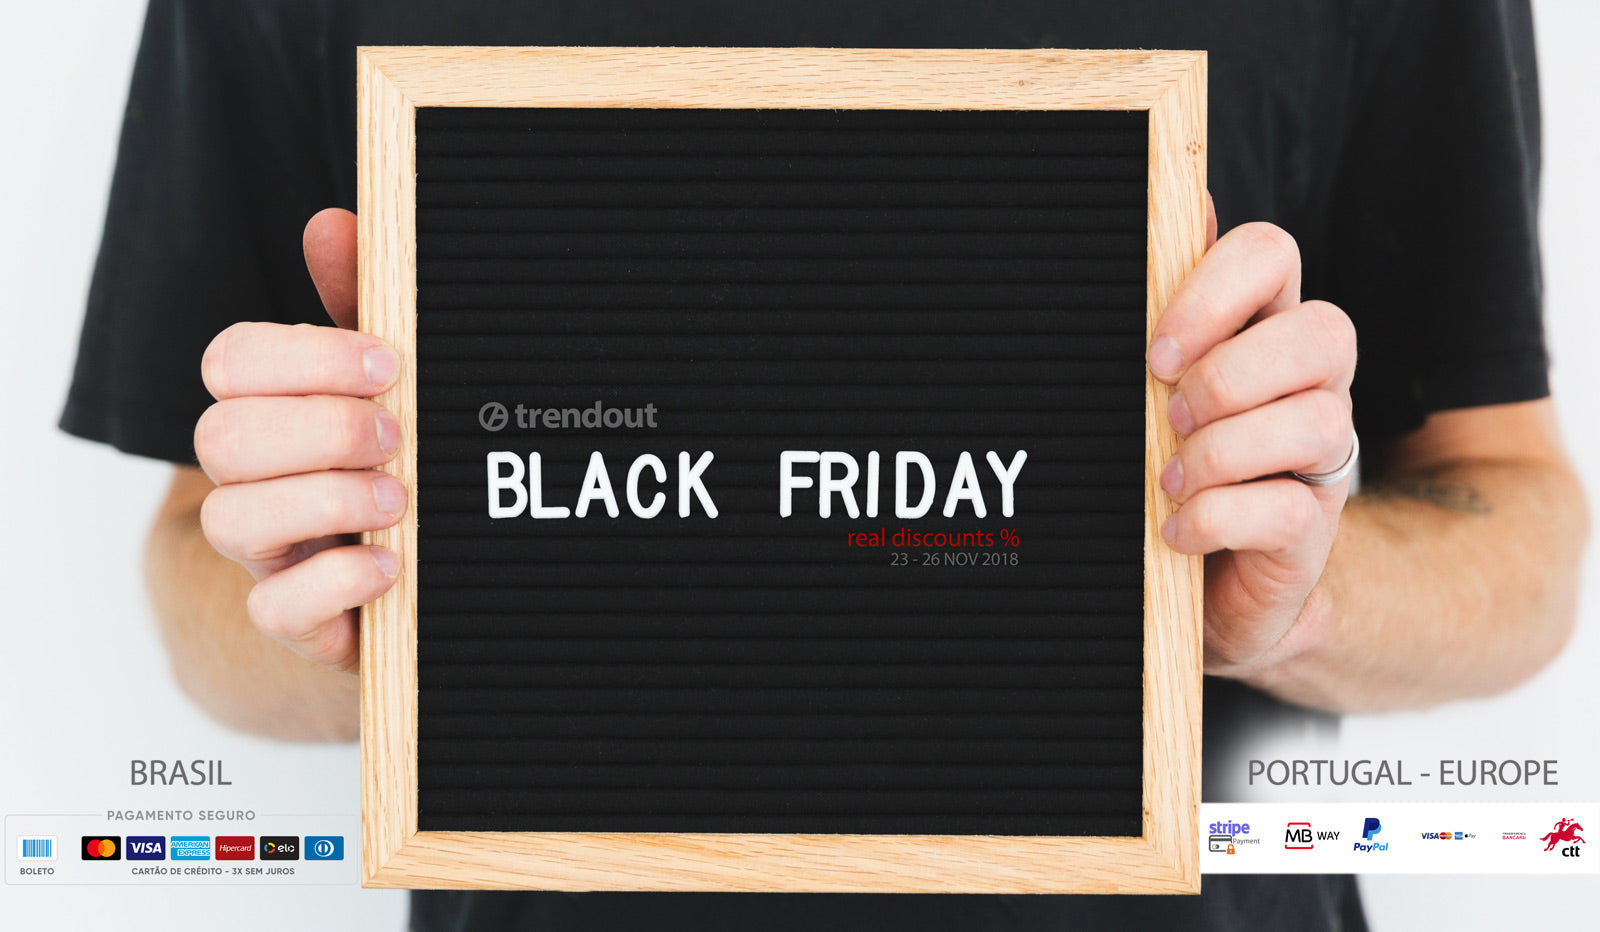 Black Friday e Cyber Monday - 23 a 26 NOV 2018